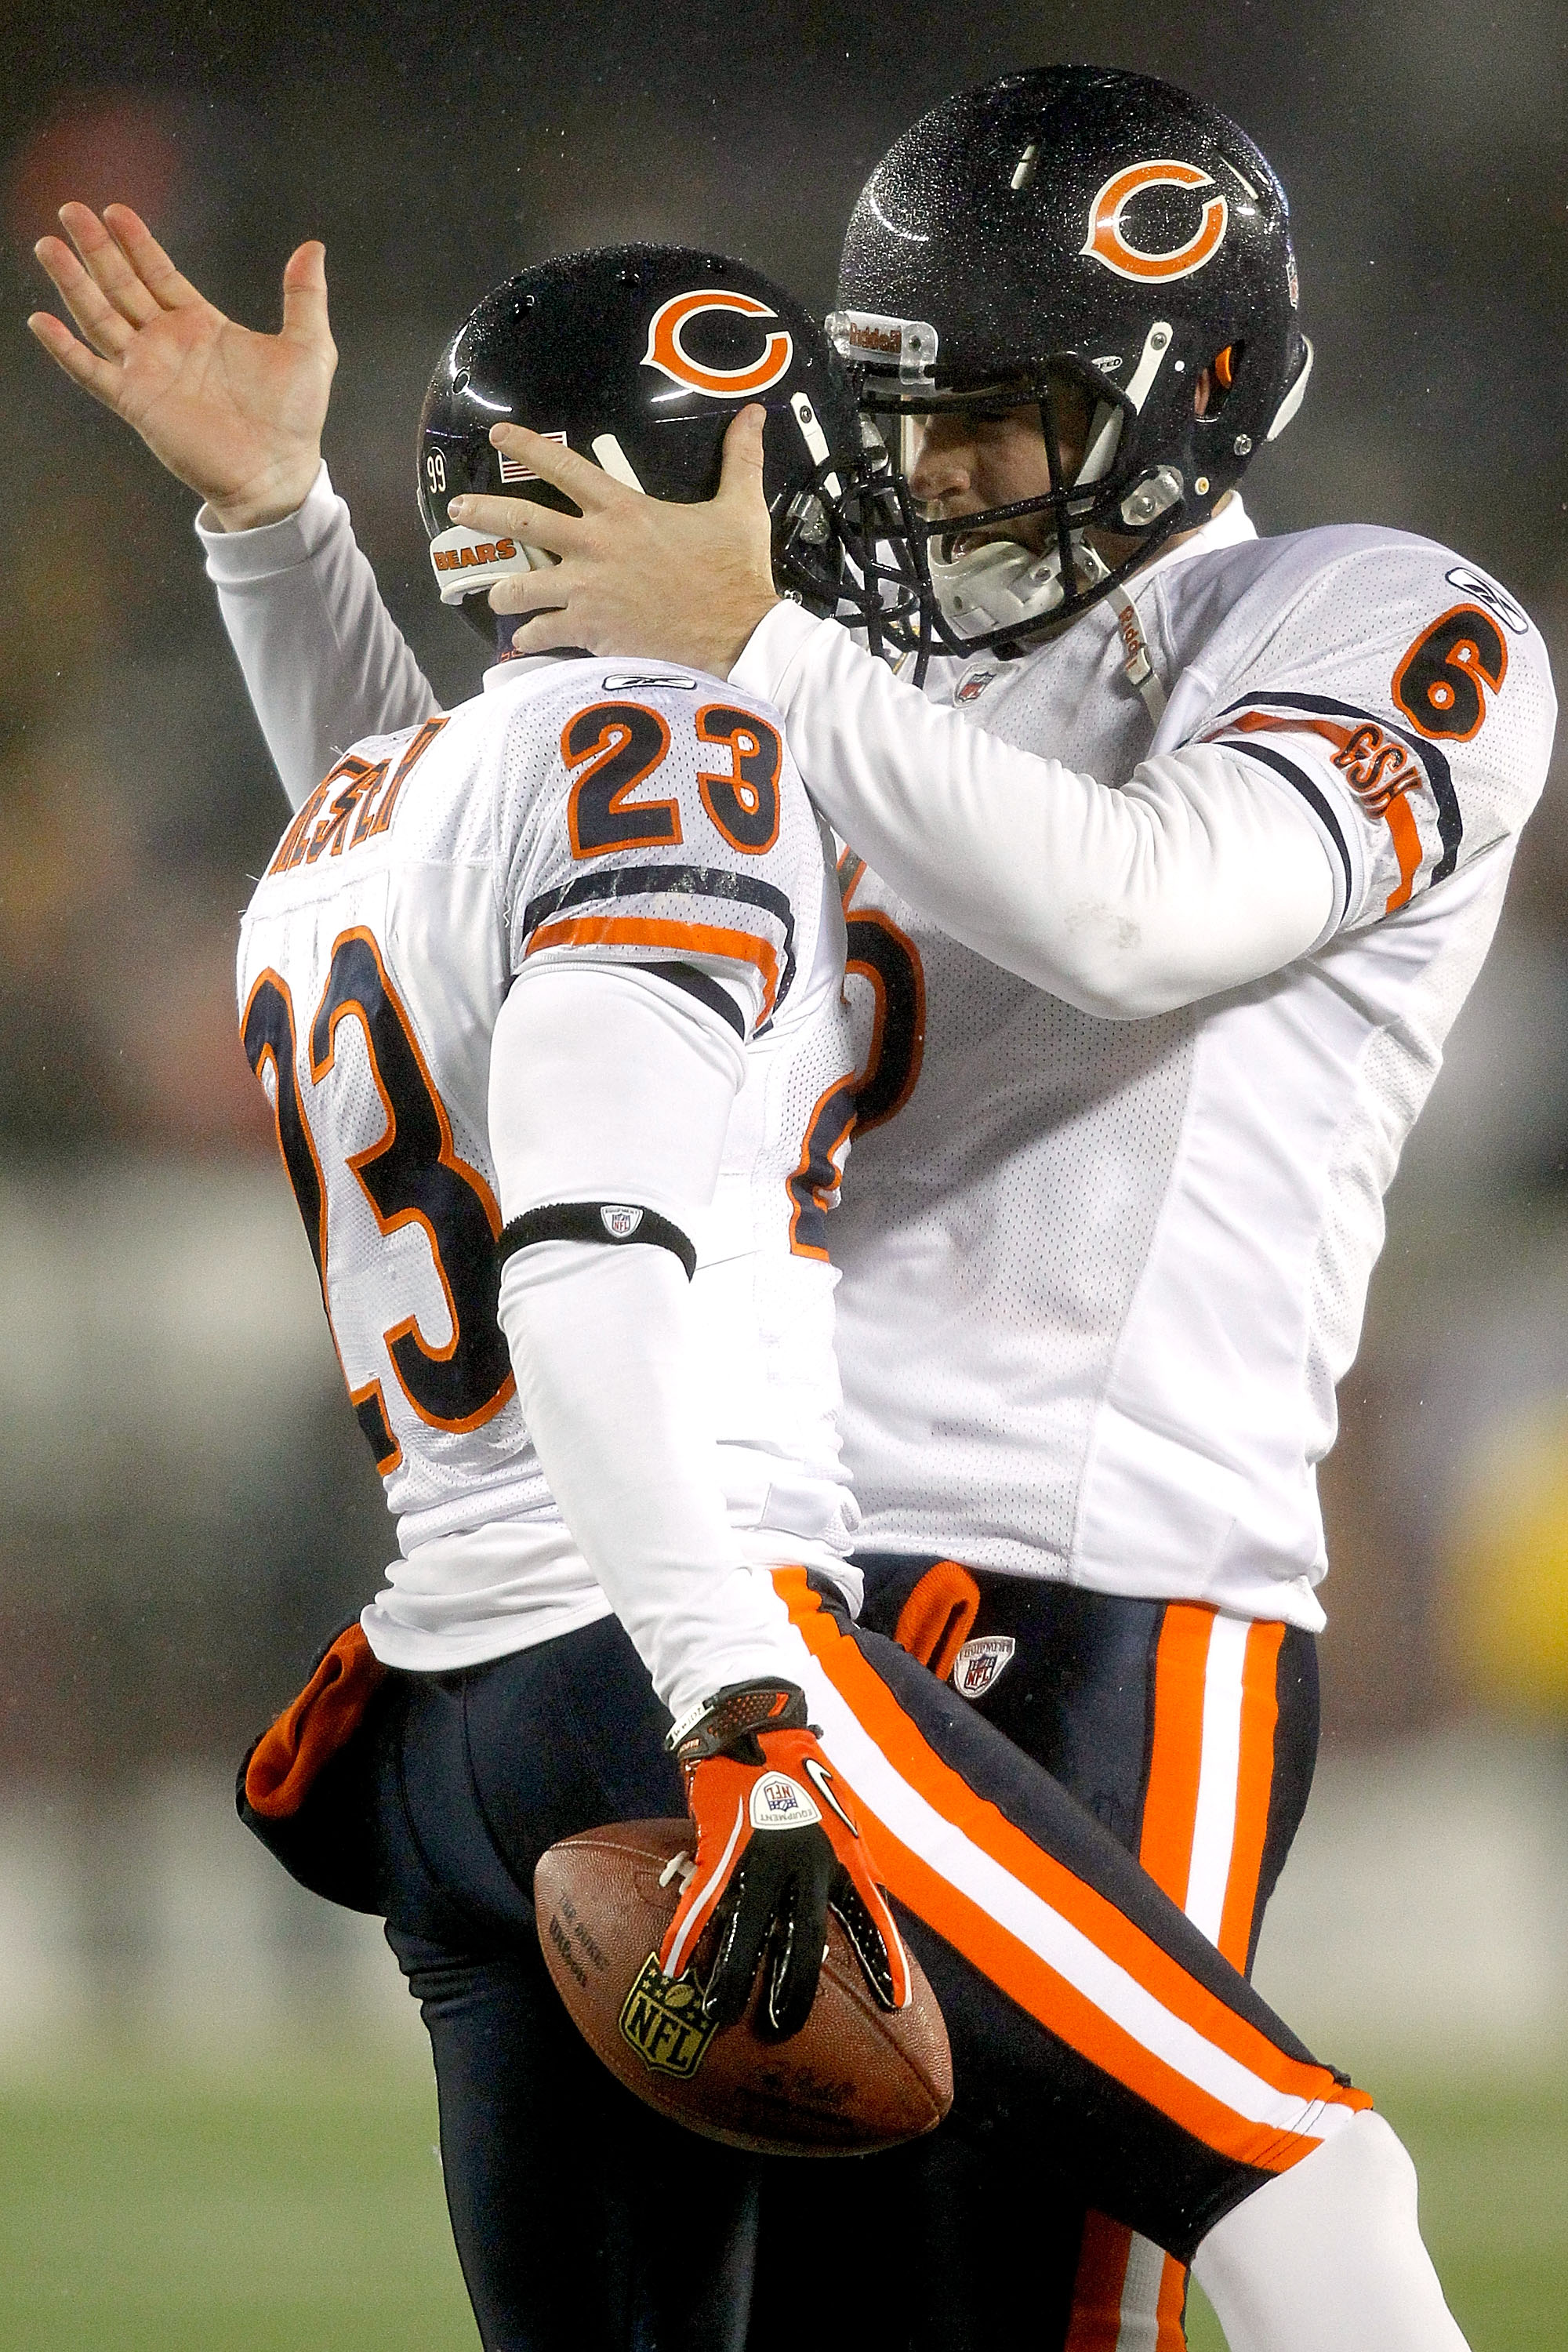 MINNEAPOLIS, MN - DECEMBER 20:  Devin Hester #23 of the Chicago Bears is congrtaulated by quarterback Jay Cutler #6 after scoring a touchdown against the Minnesota Vikings at TCF Bank Stadium on December 20, 2010 in Minneapolis, Minnesota.  (Photo by Matt